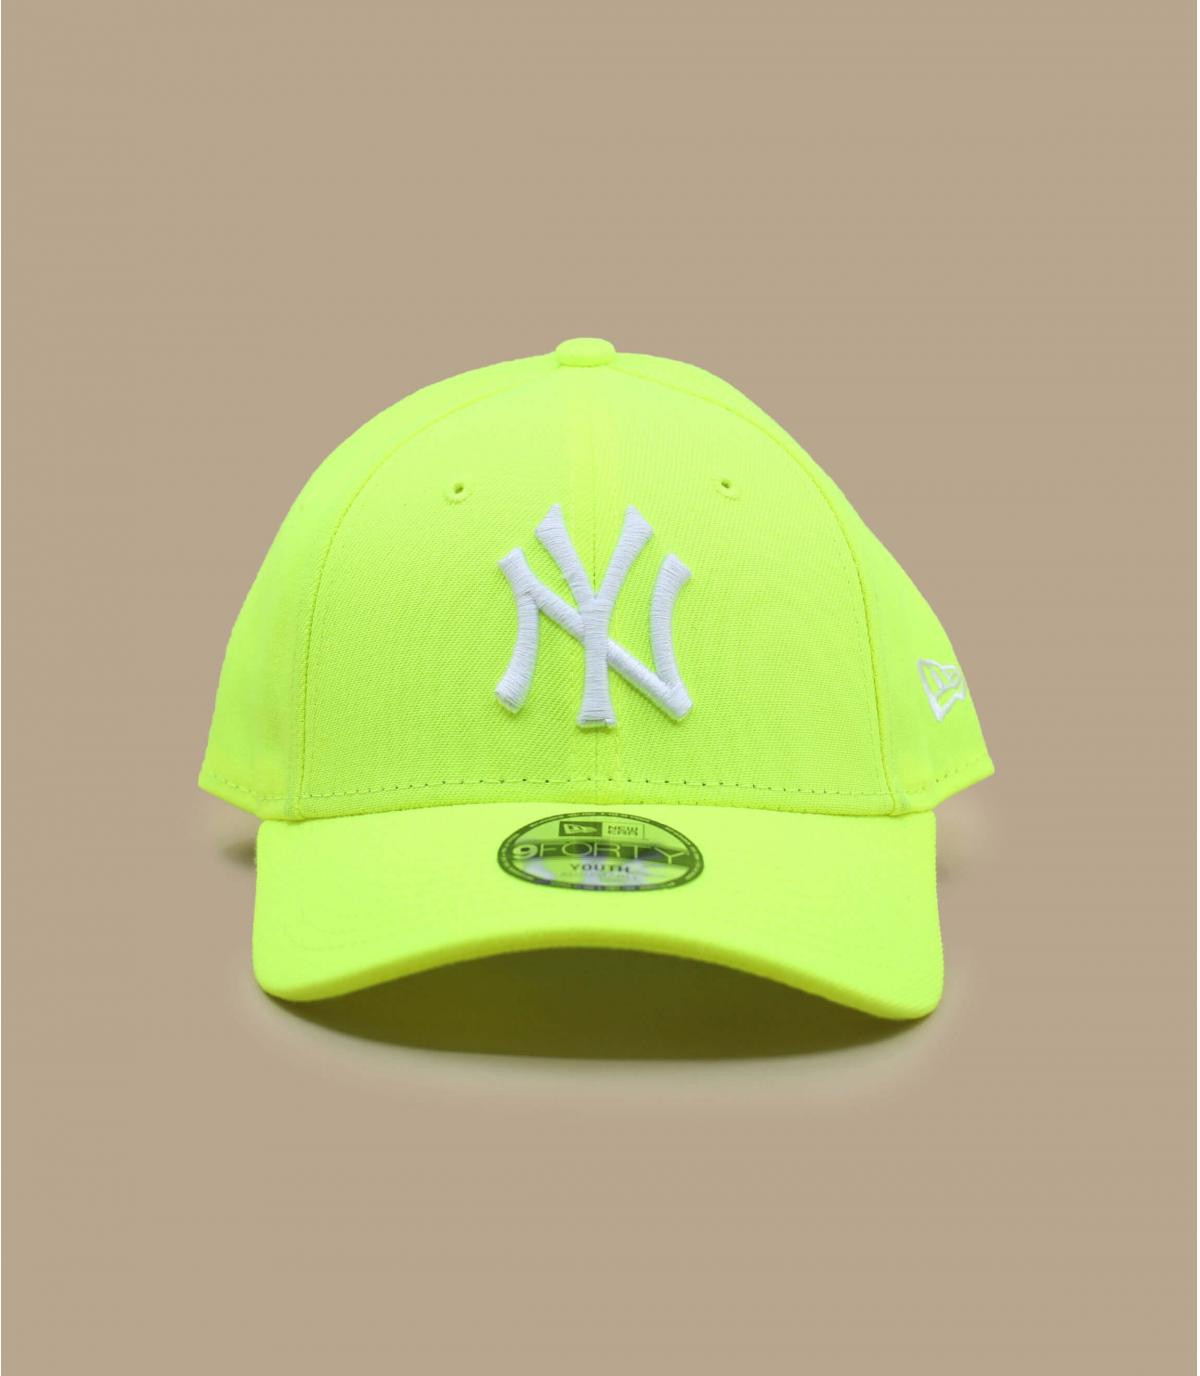 Détails Casquette Kids Neon Pack NY 940 upright  yellow - image 2